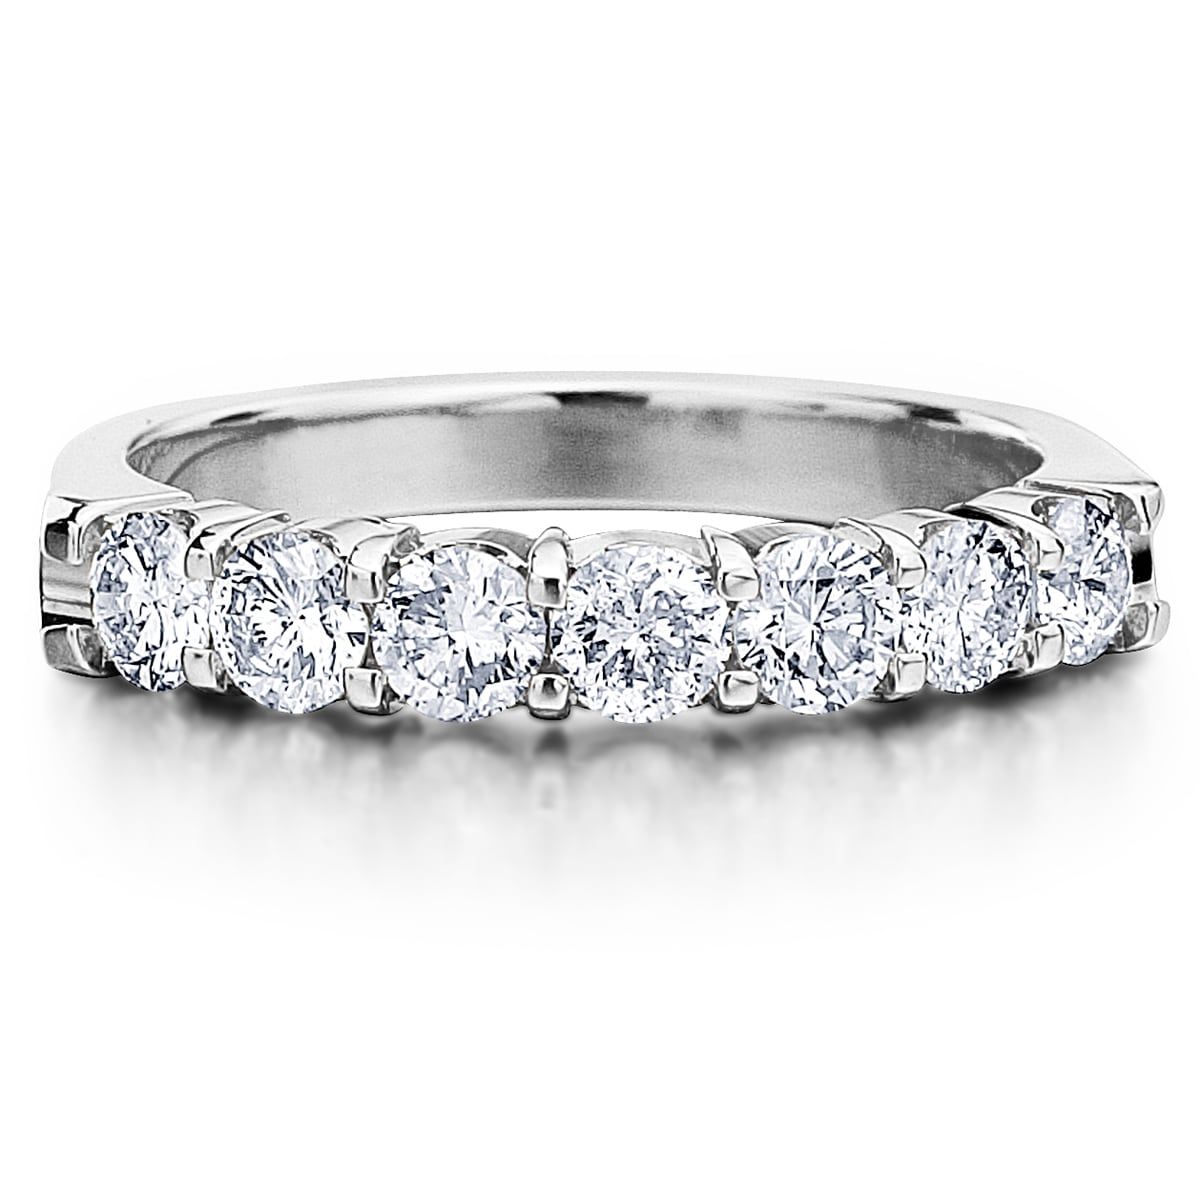 Amore Platinum 1ct Tdw 7 Stone Shared G Diamond Ring Free Shipping Today 9629465